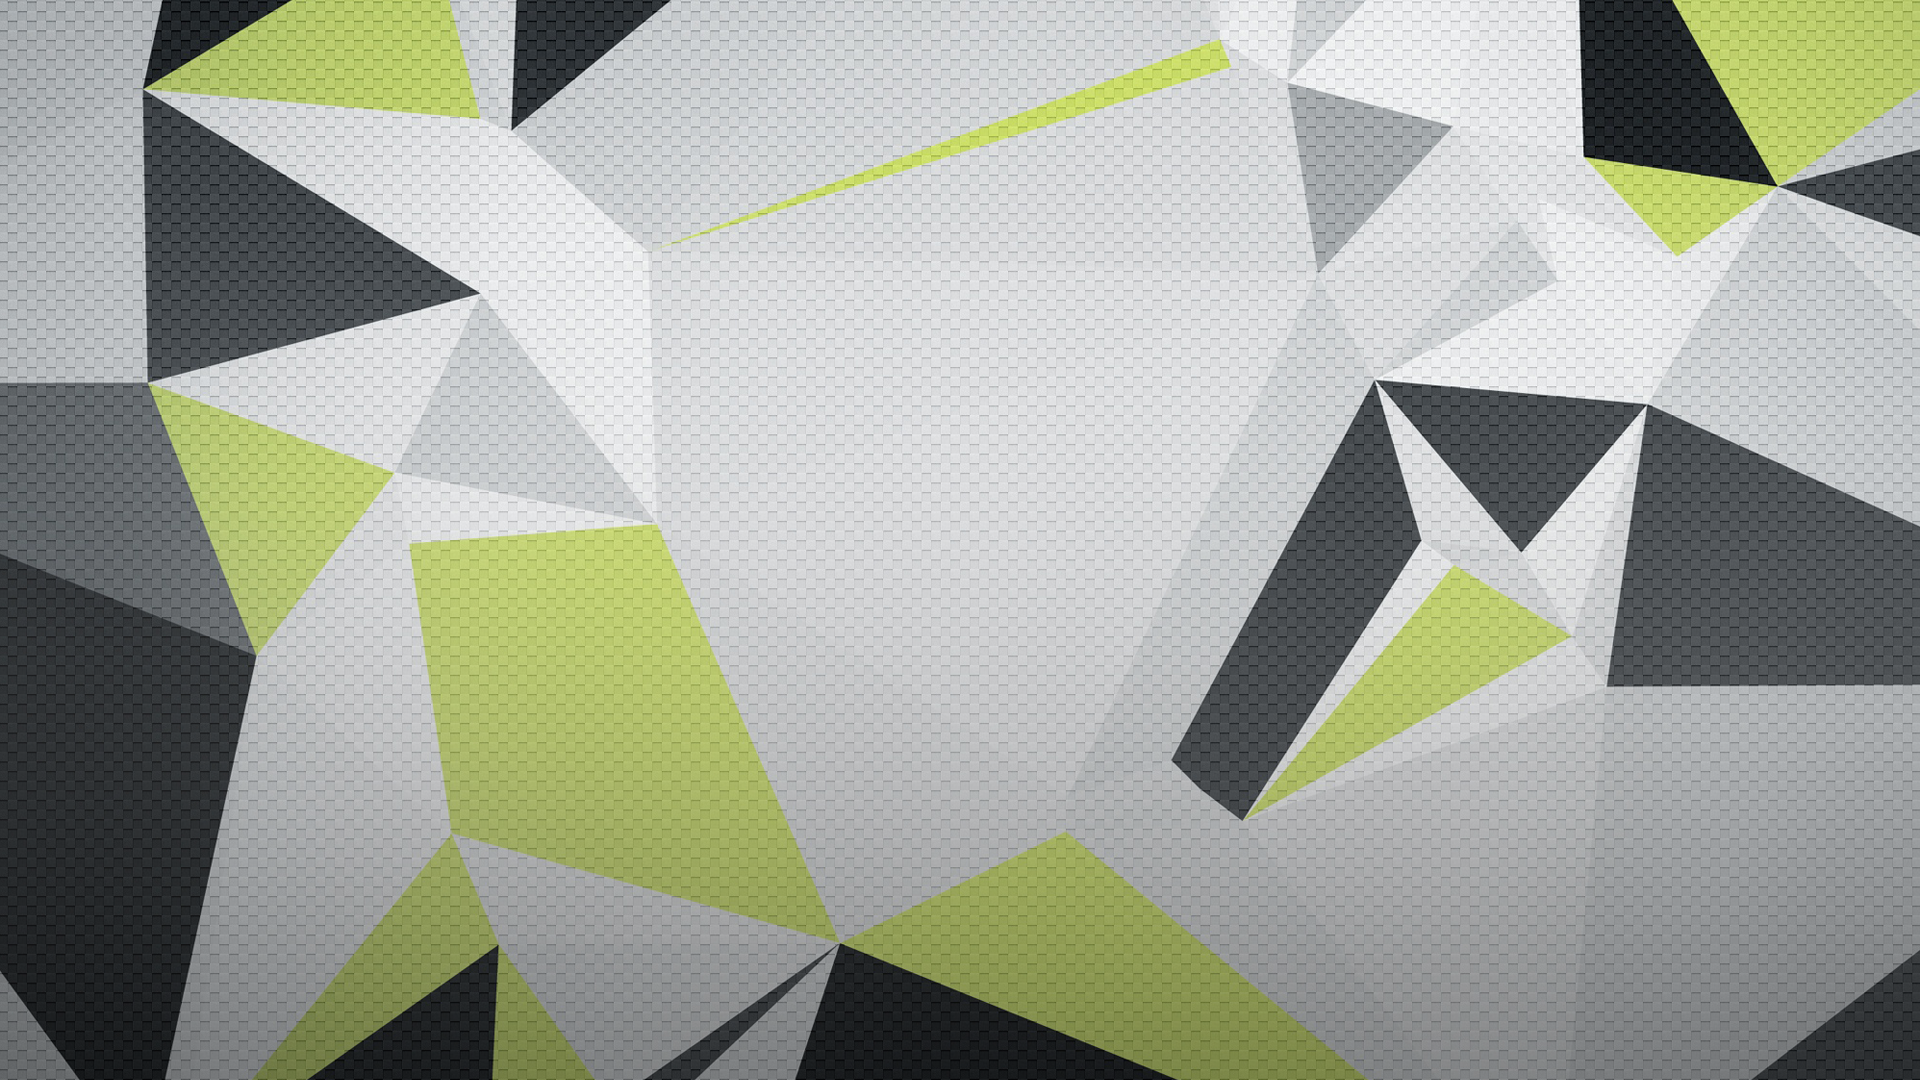 Geometric Wallpaper 1920x1080